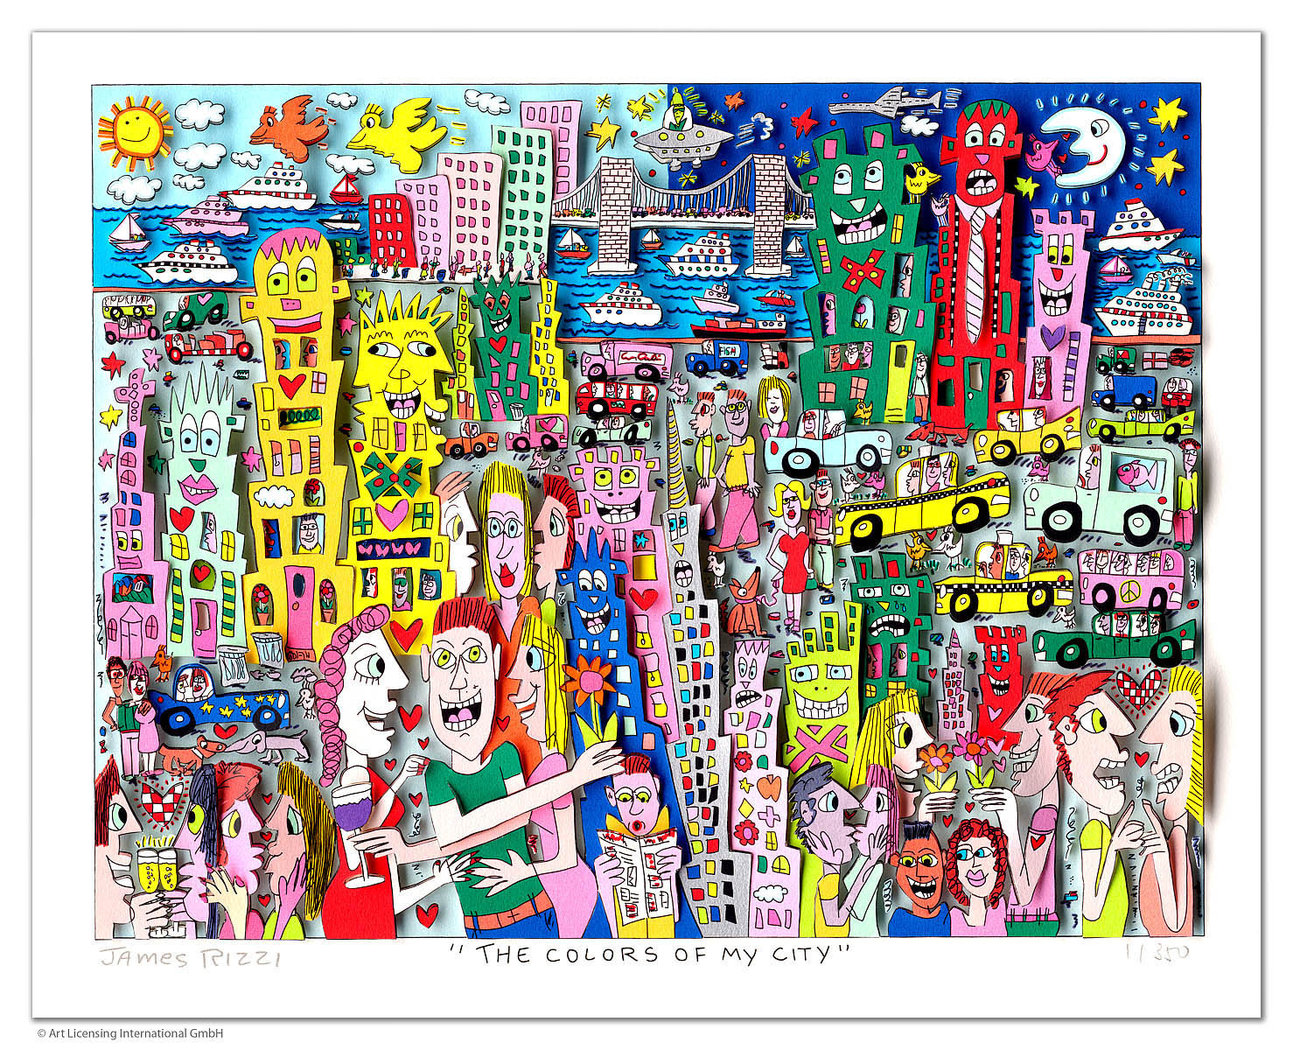 James Rizzi - THE COLORS OF MY CITY